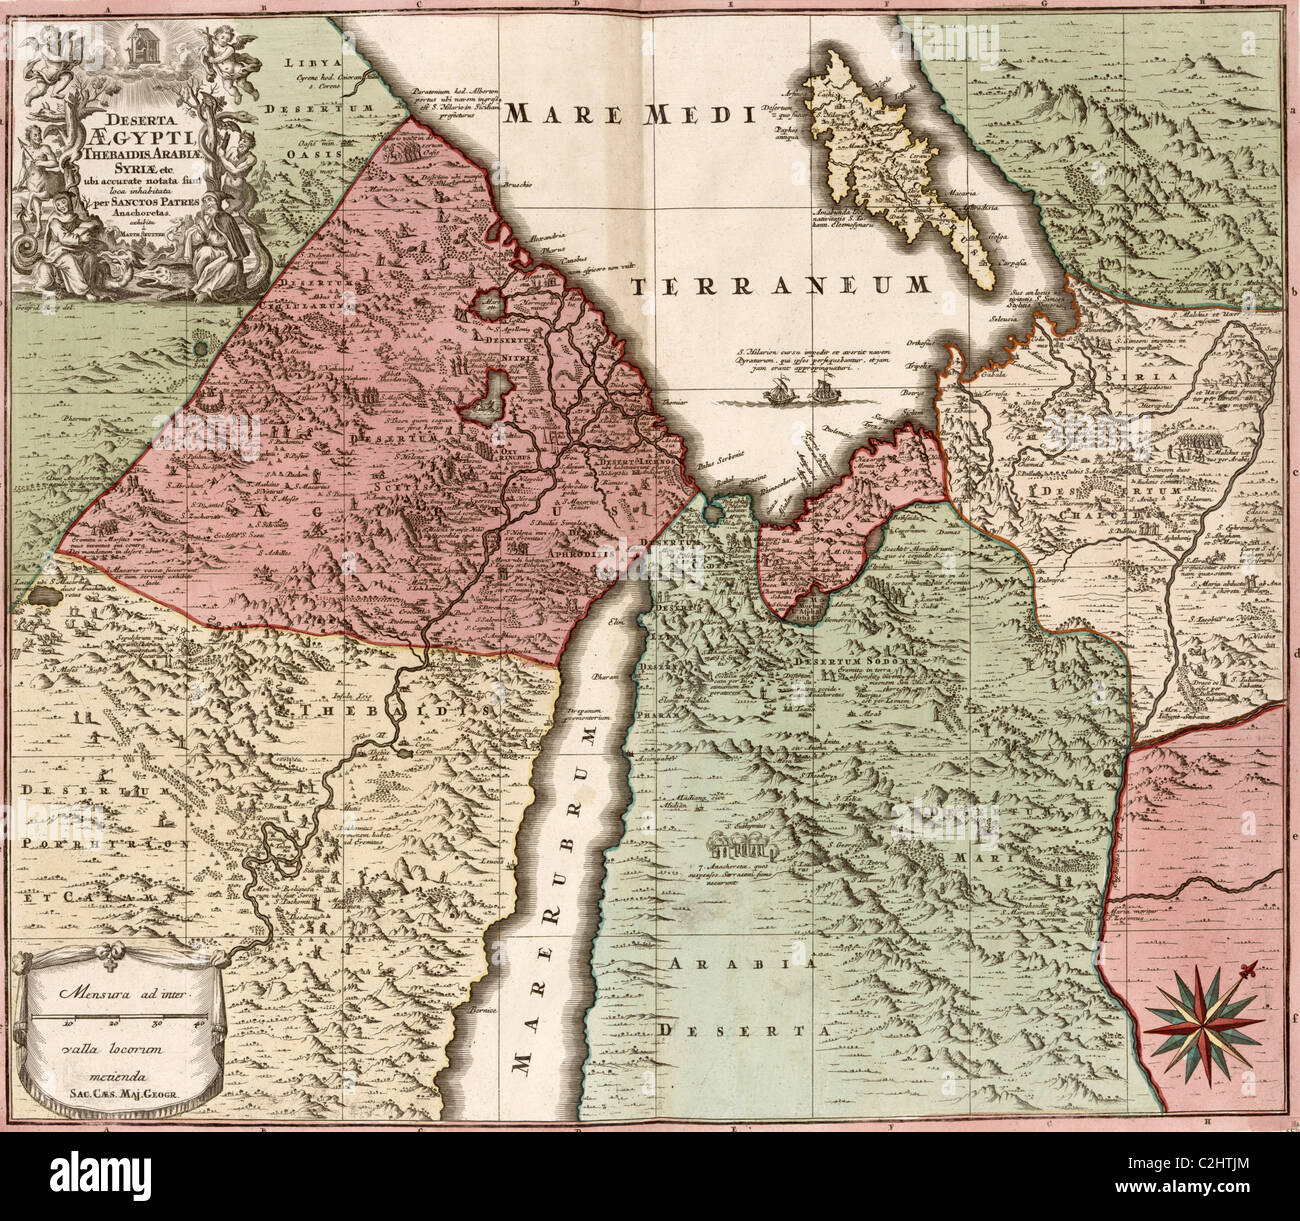 Egypt  Syria   Arabia   1700 s Stock Photo  36042572   Alamy Egypt  Syria   Arabia   1700 s